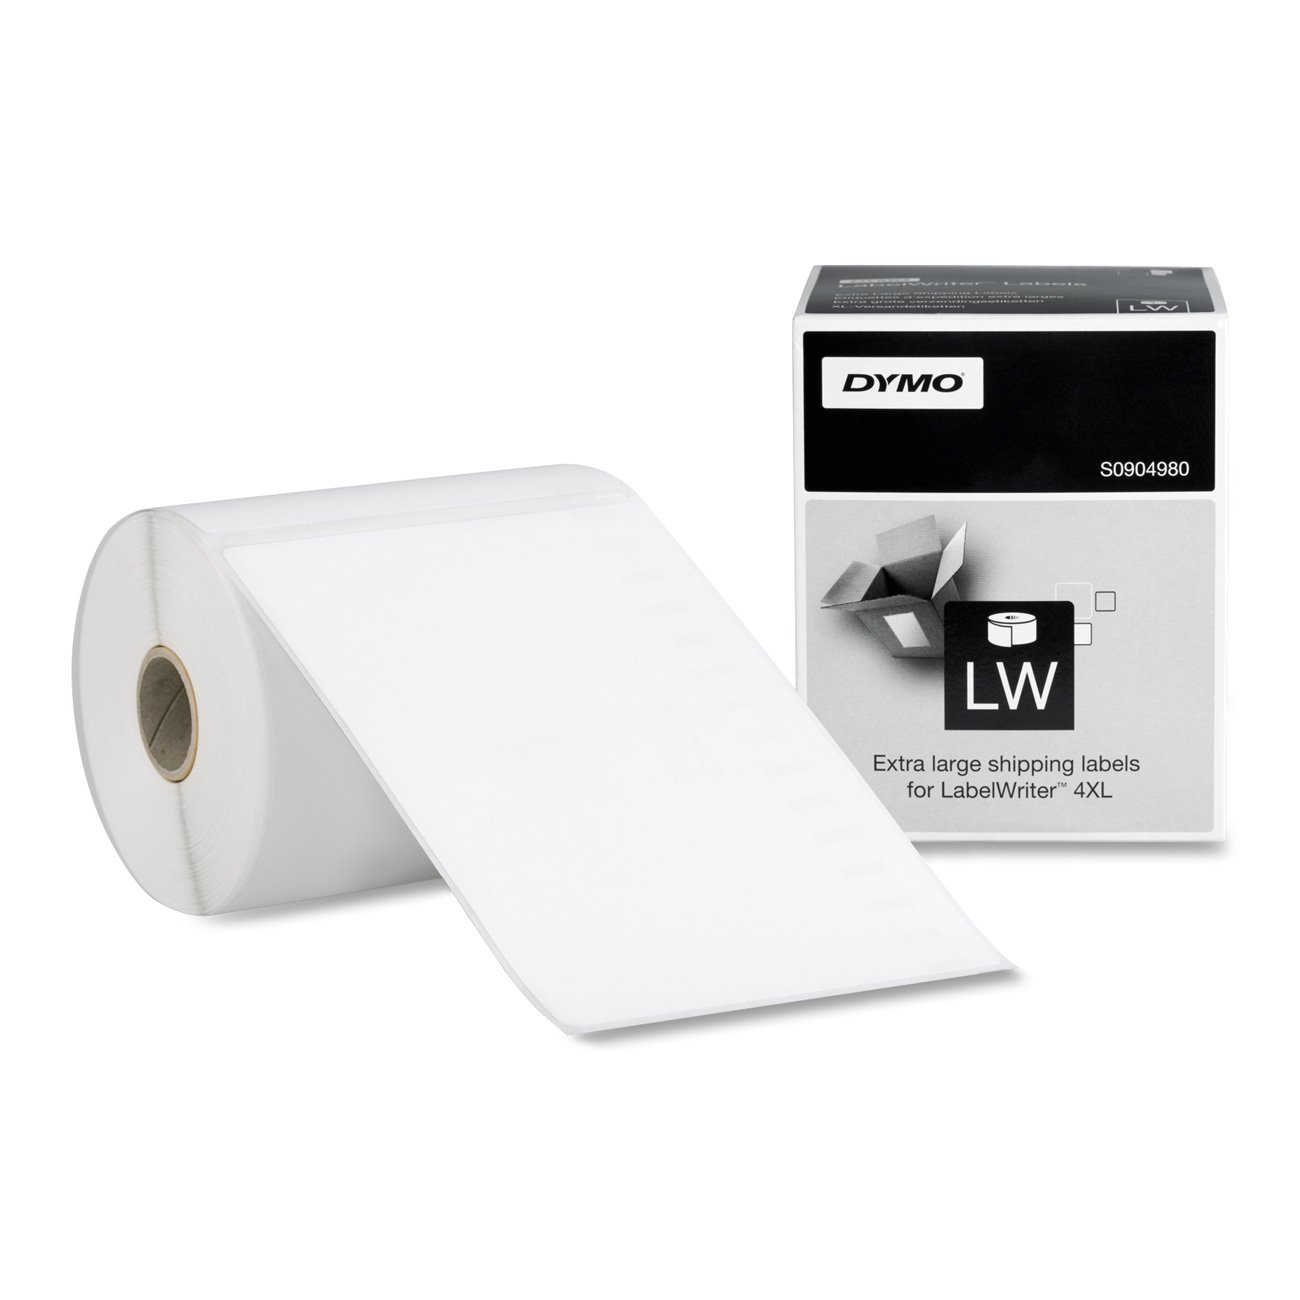 Amazon DYMO LW ExtraLarge Shipping Labels for LabelWriter – Large Mailing Labels